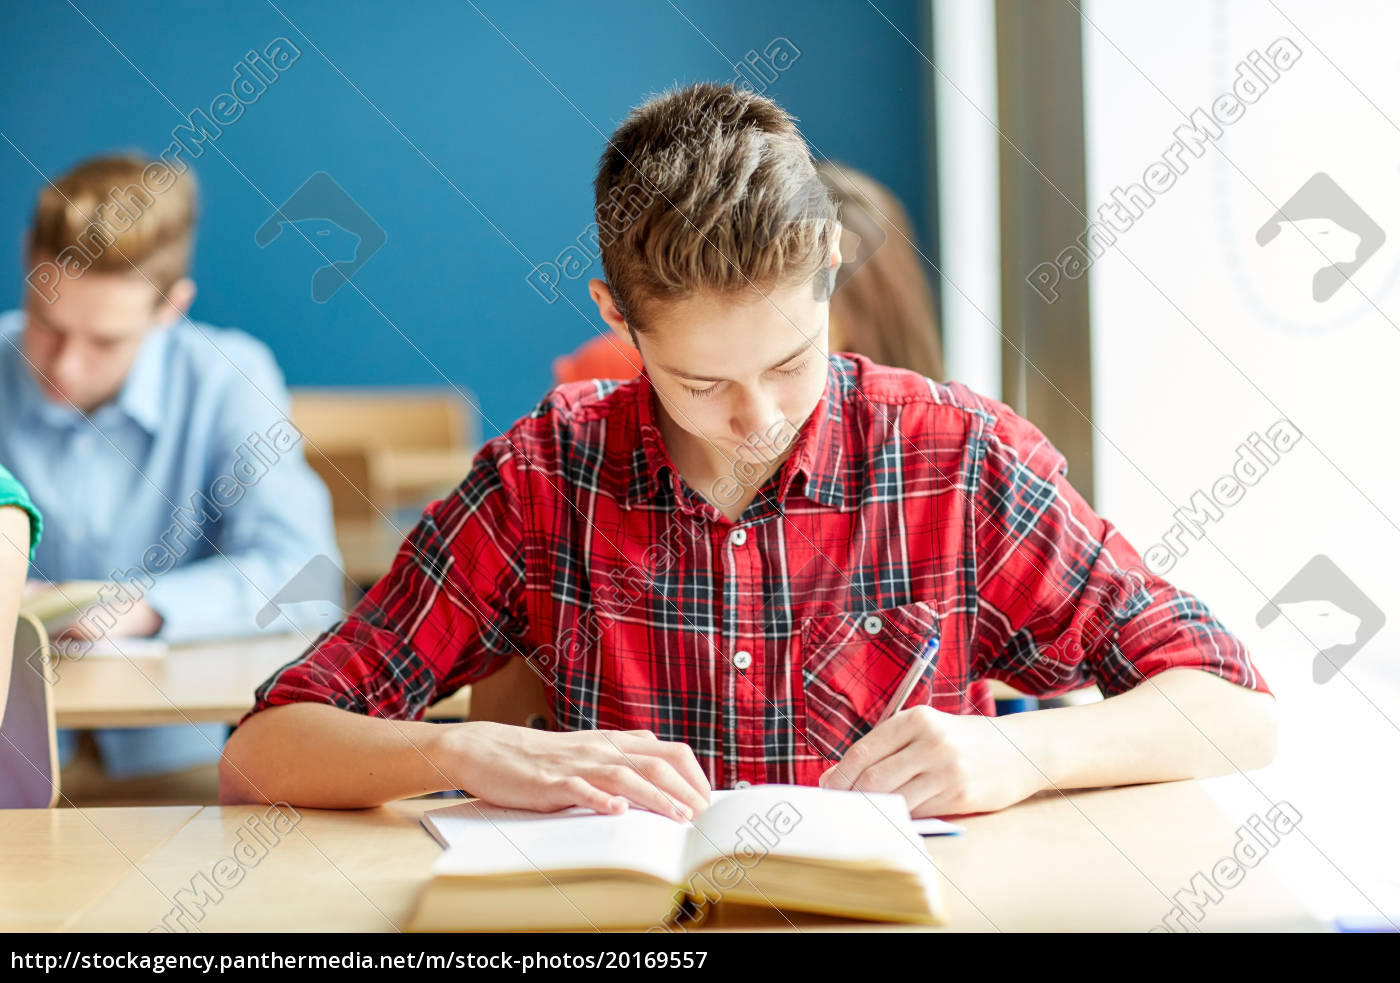 group, of, students, with, books, writing - 20169557